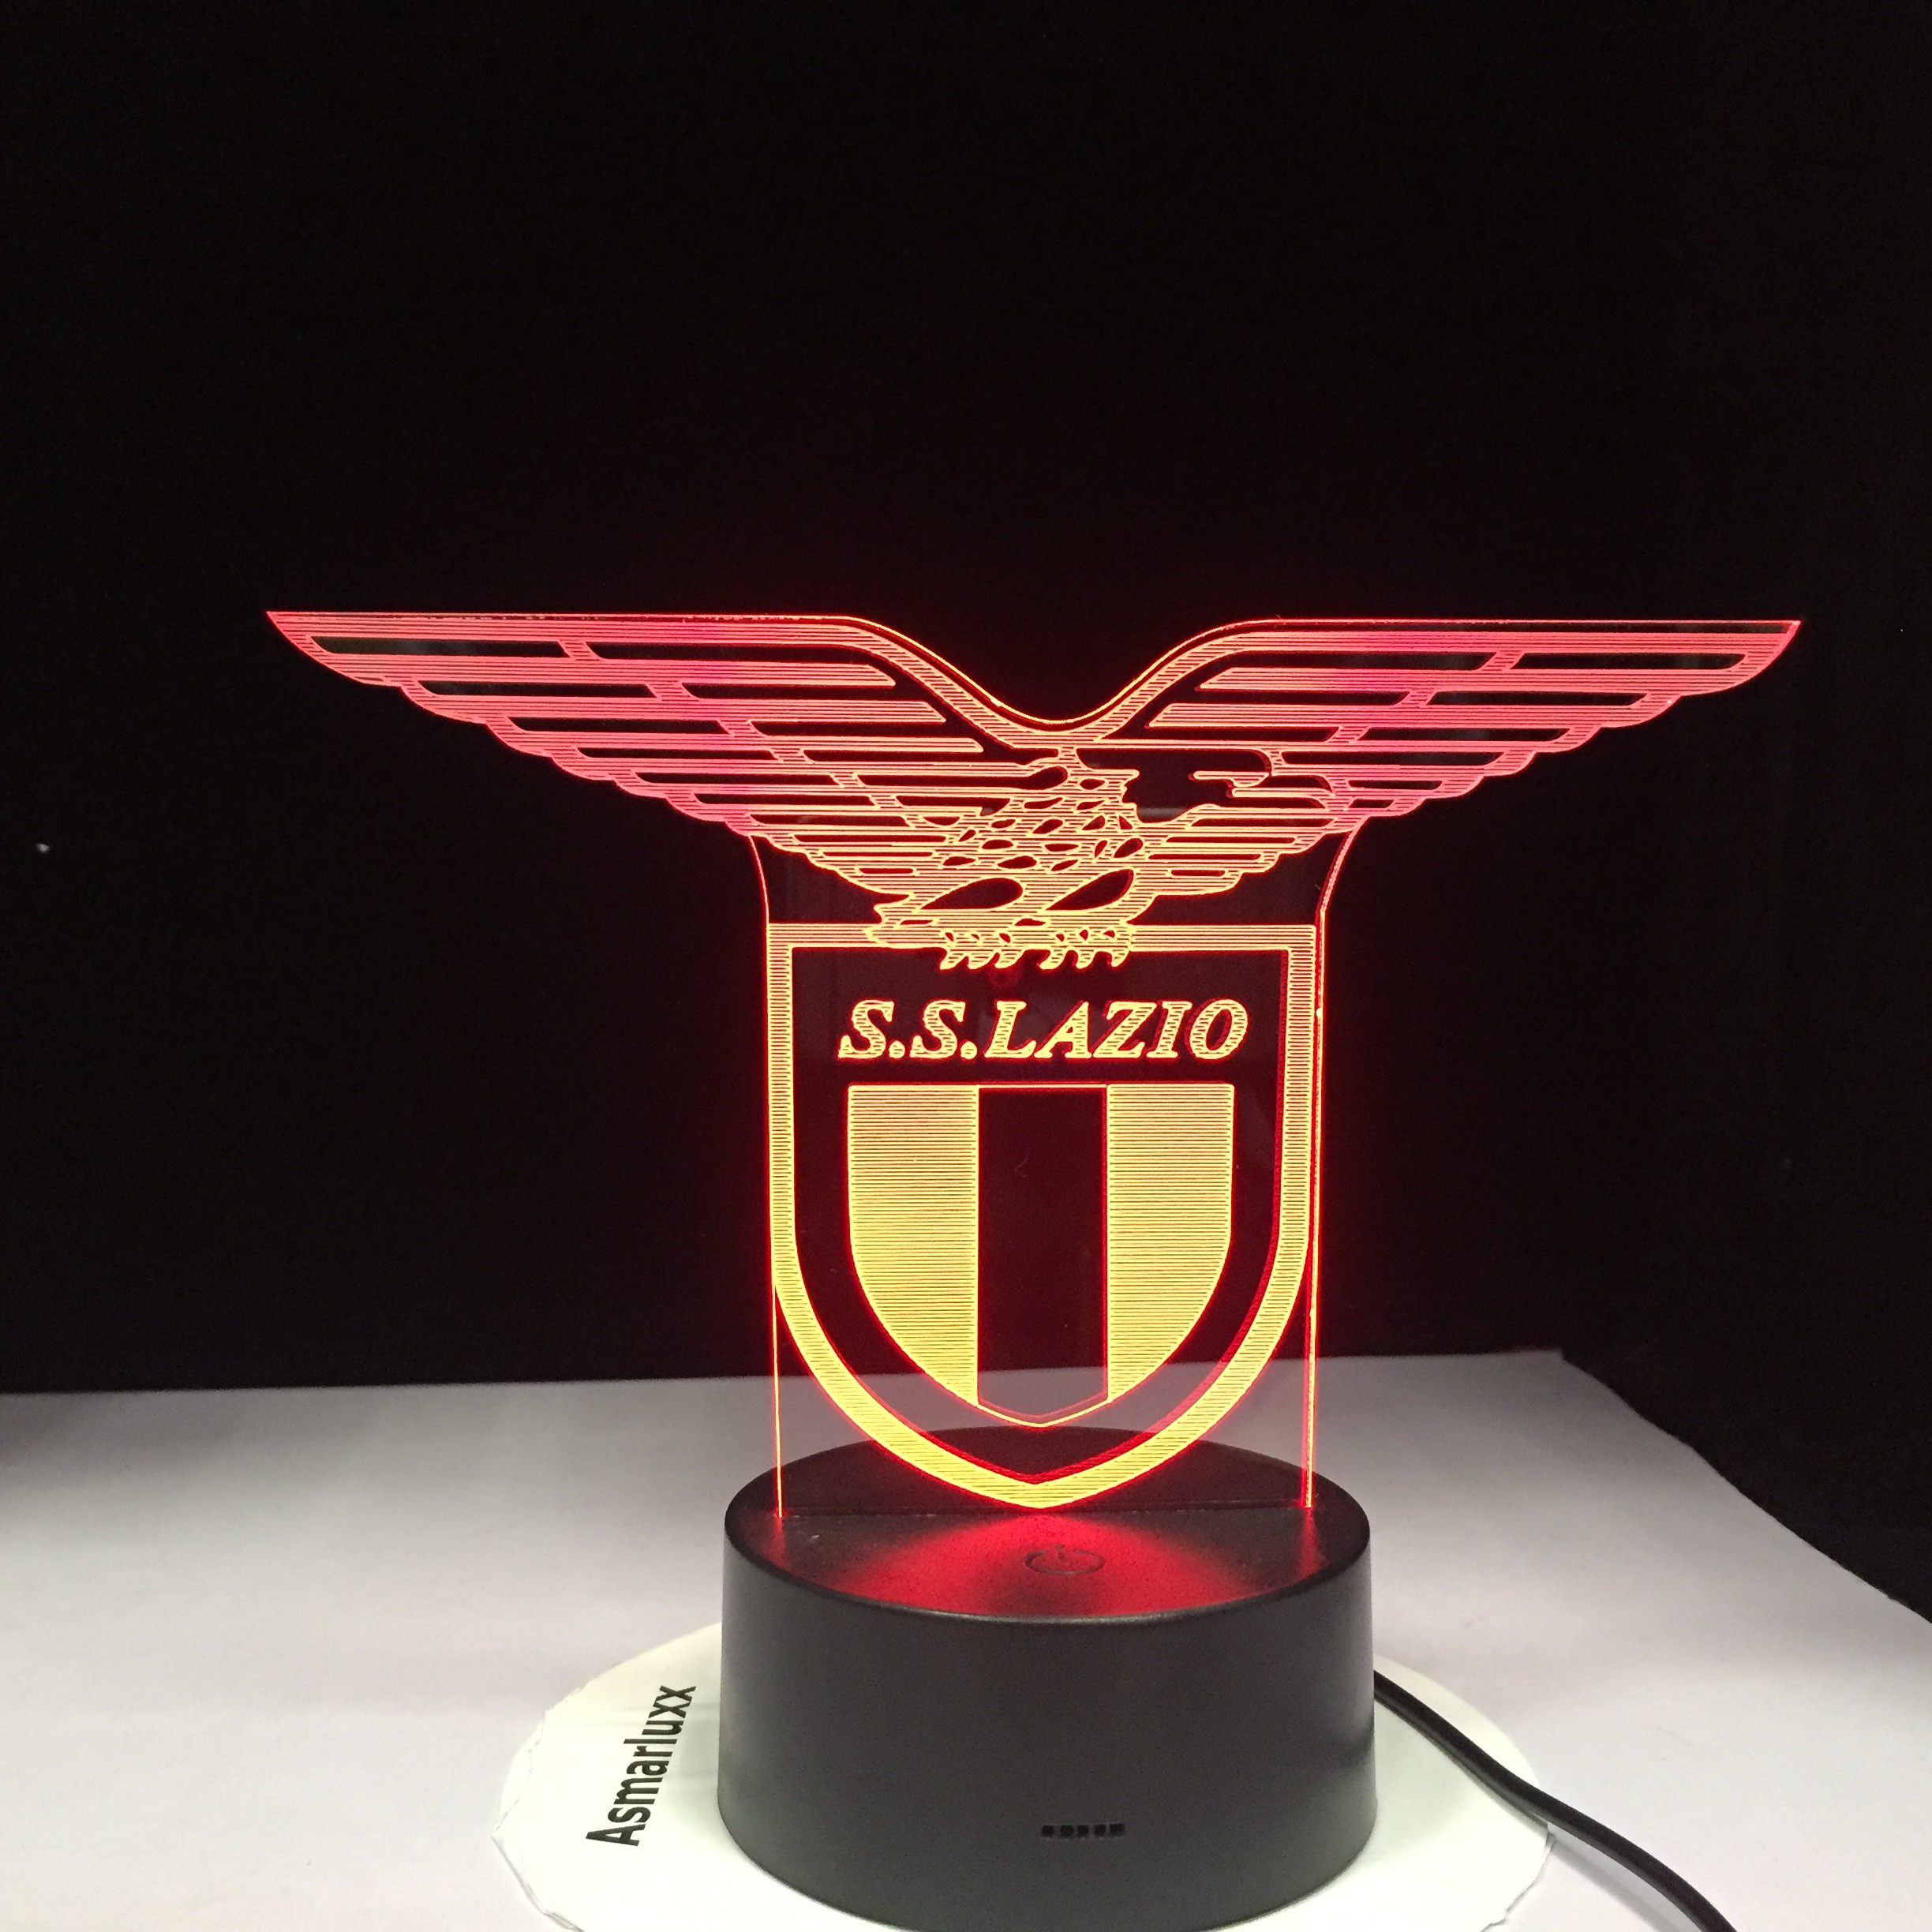 Ss Lazio Italian Club 3d Led Night Light Lamp Touch Sensor 7 Color Changing Office Club Home Bar Room Decorative Table Desk Lamp